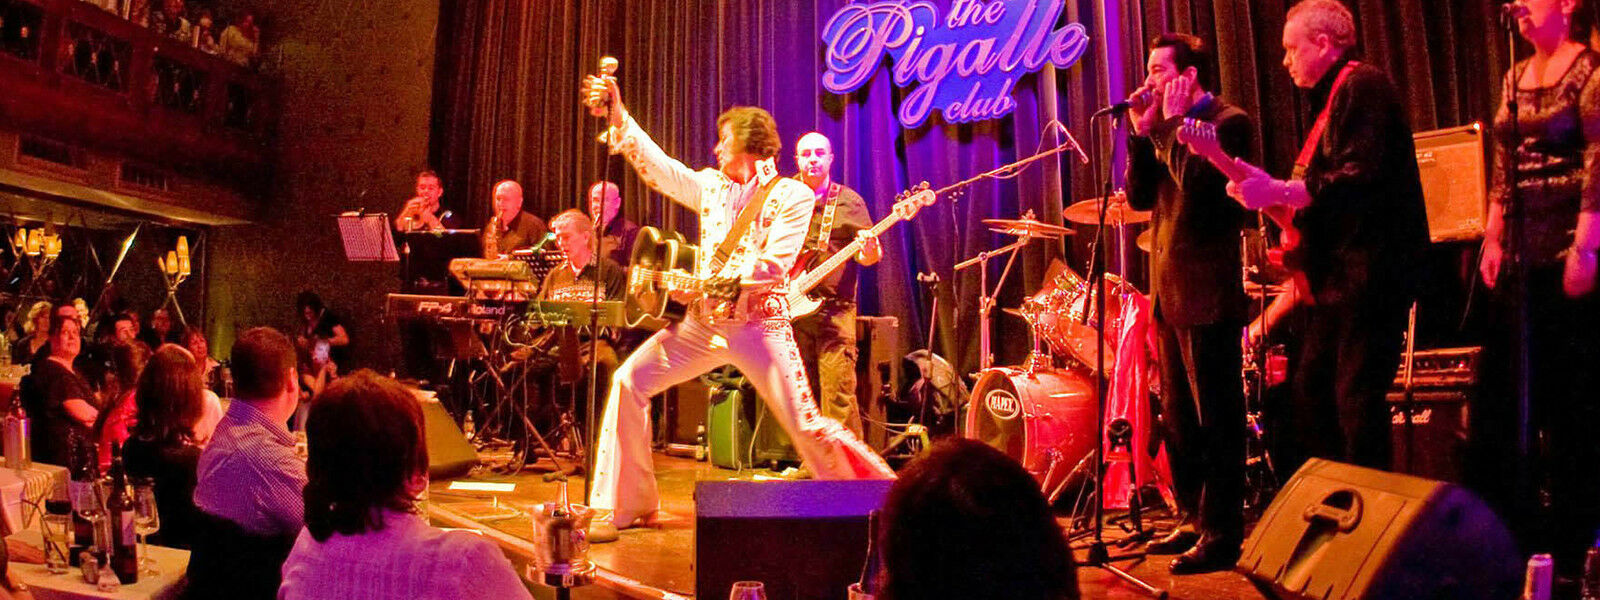 The Ultimate Elvis Tribute Artist Spectacular featuring Shawn Klush and Cody Ray Slaughter